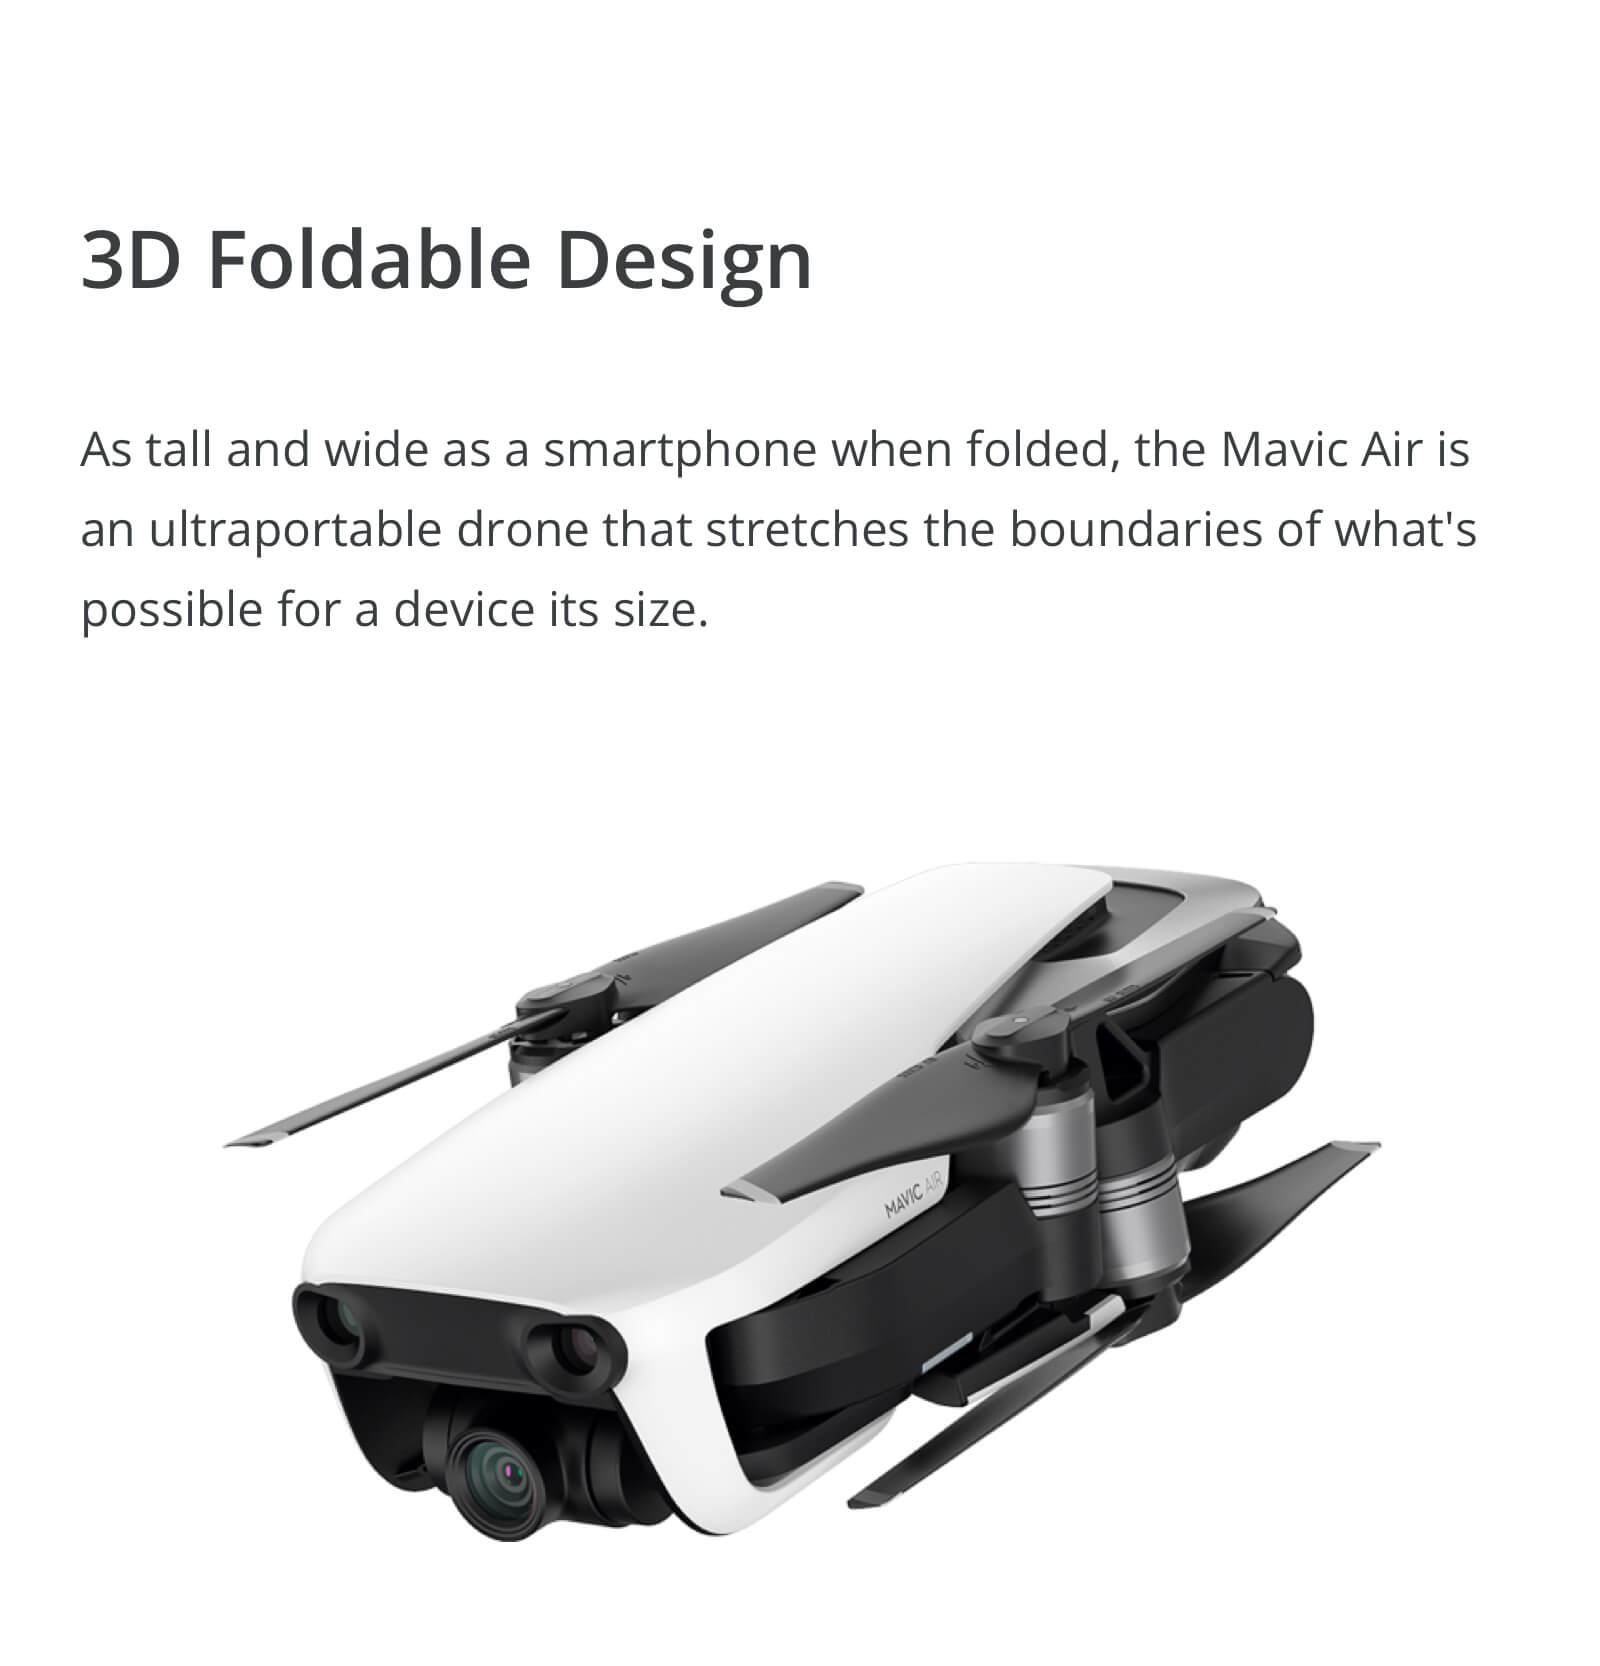 The DJI Mavic Air Foldable Design